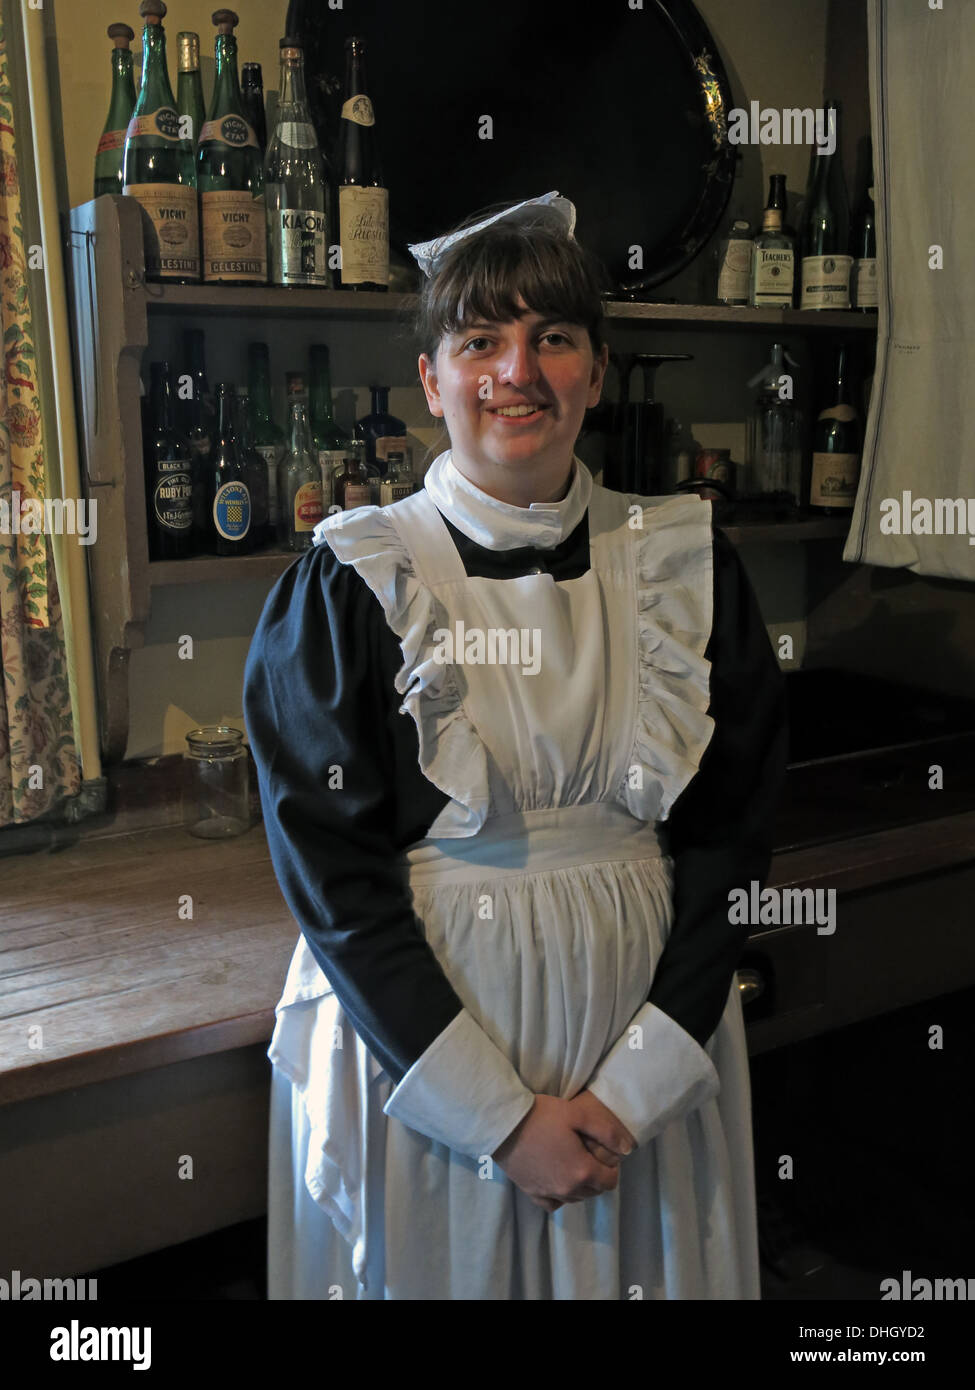 Stately Home Kitchen Maid Servant Dunham Massey  NT Cheshire England UK - Stock Image